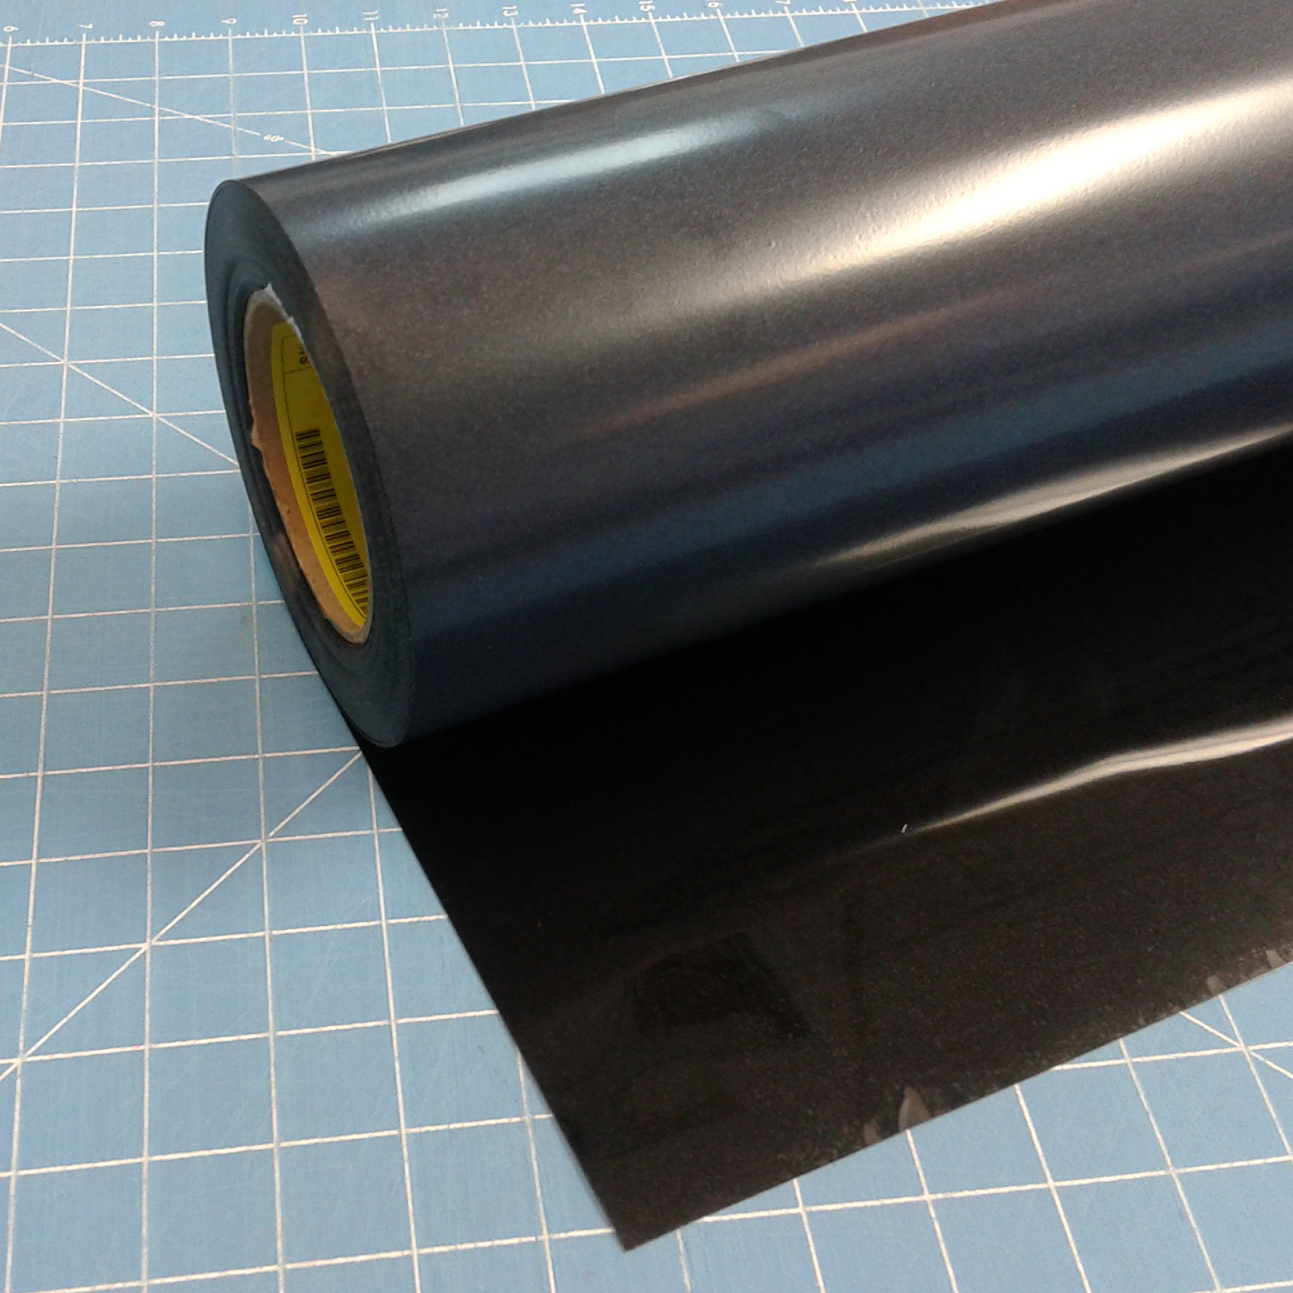 "Siser Easyweed Black 15"" x 10' Iron on Heat Transfer Vinyl Roll HTV"